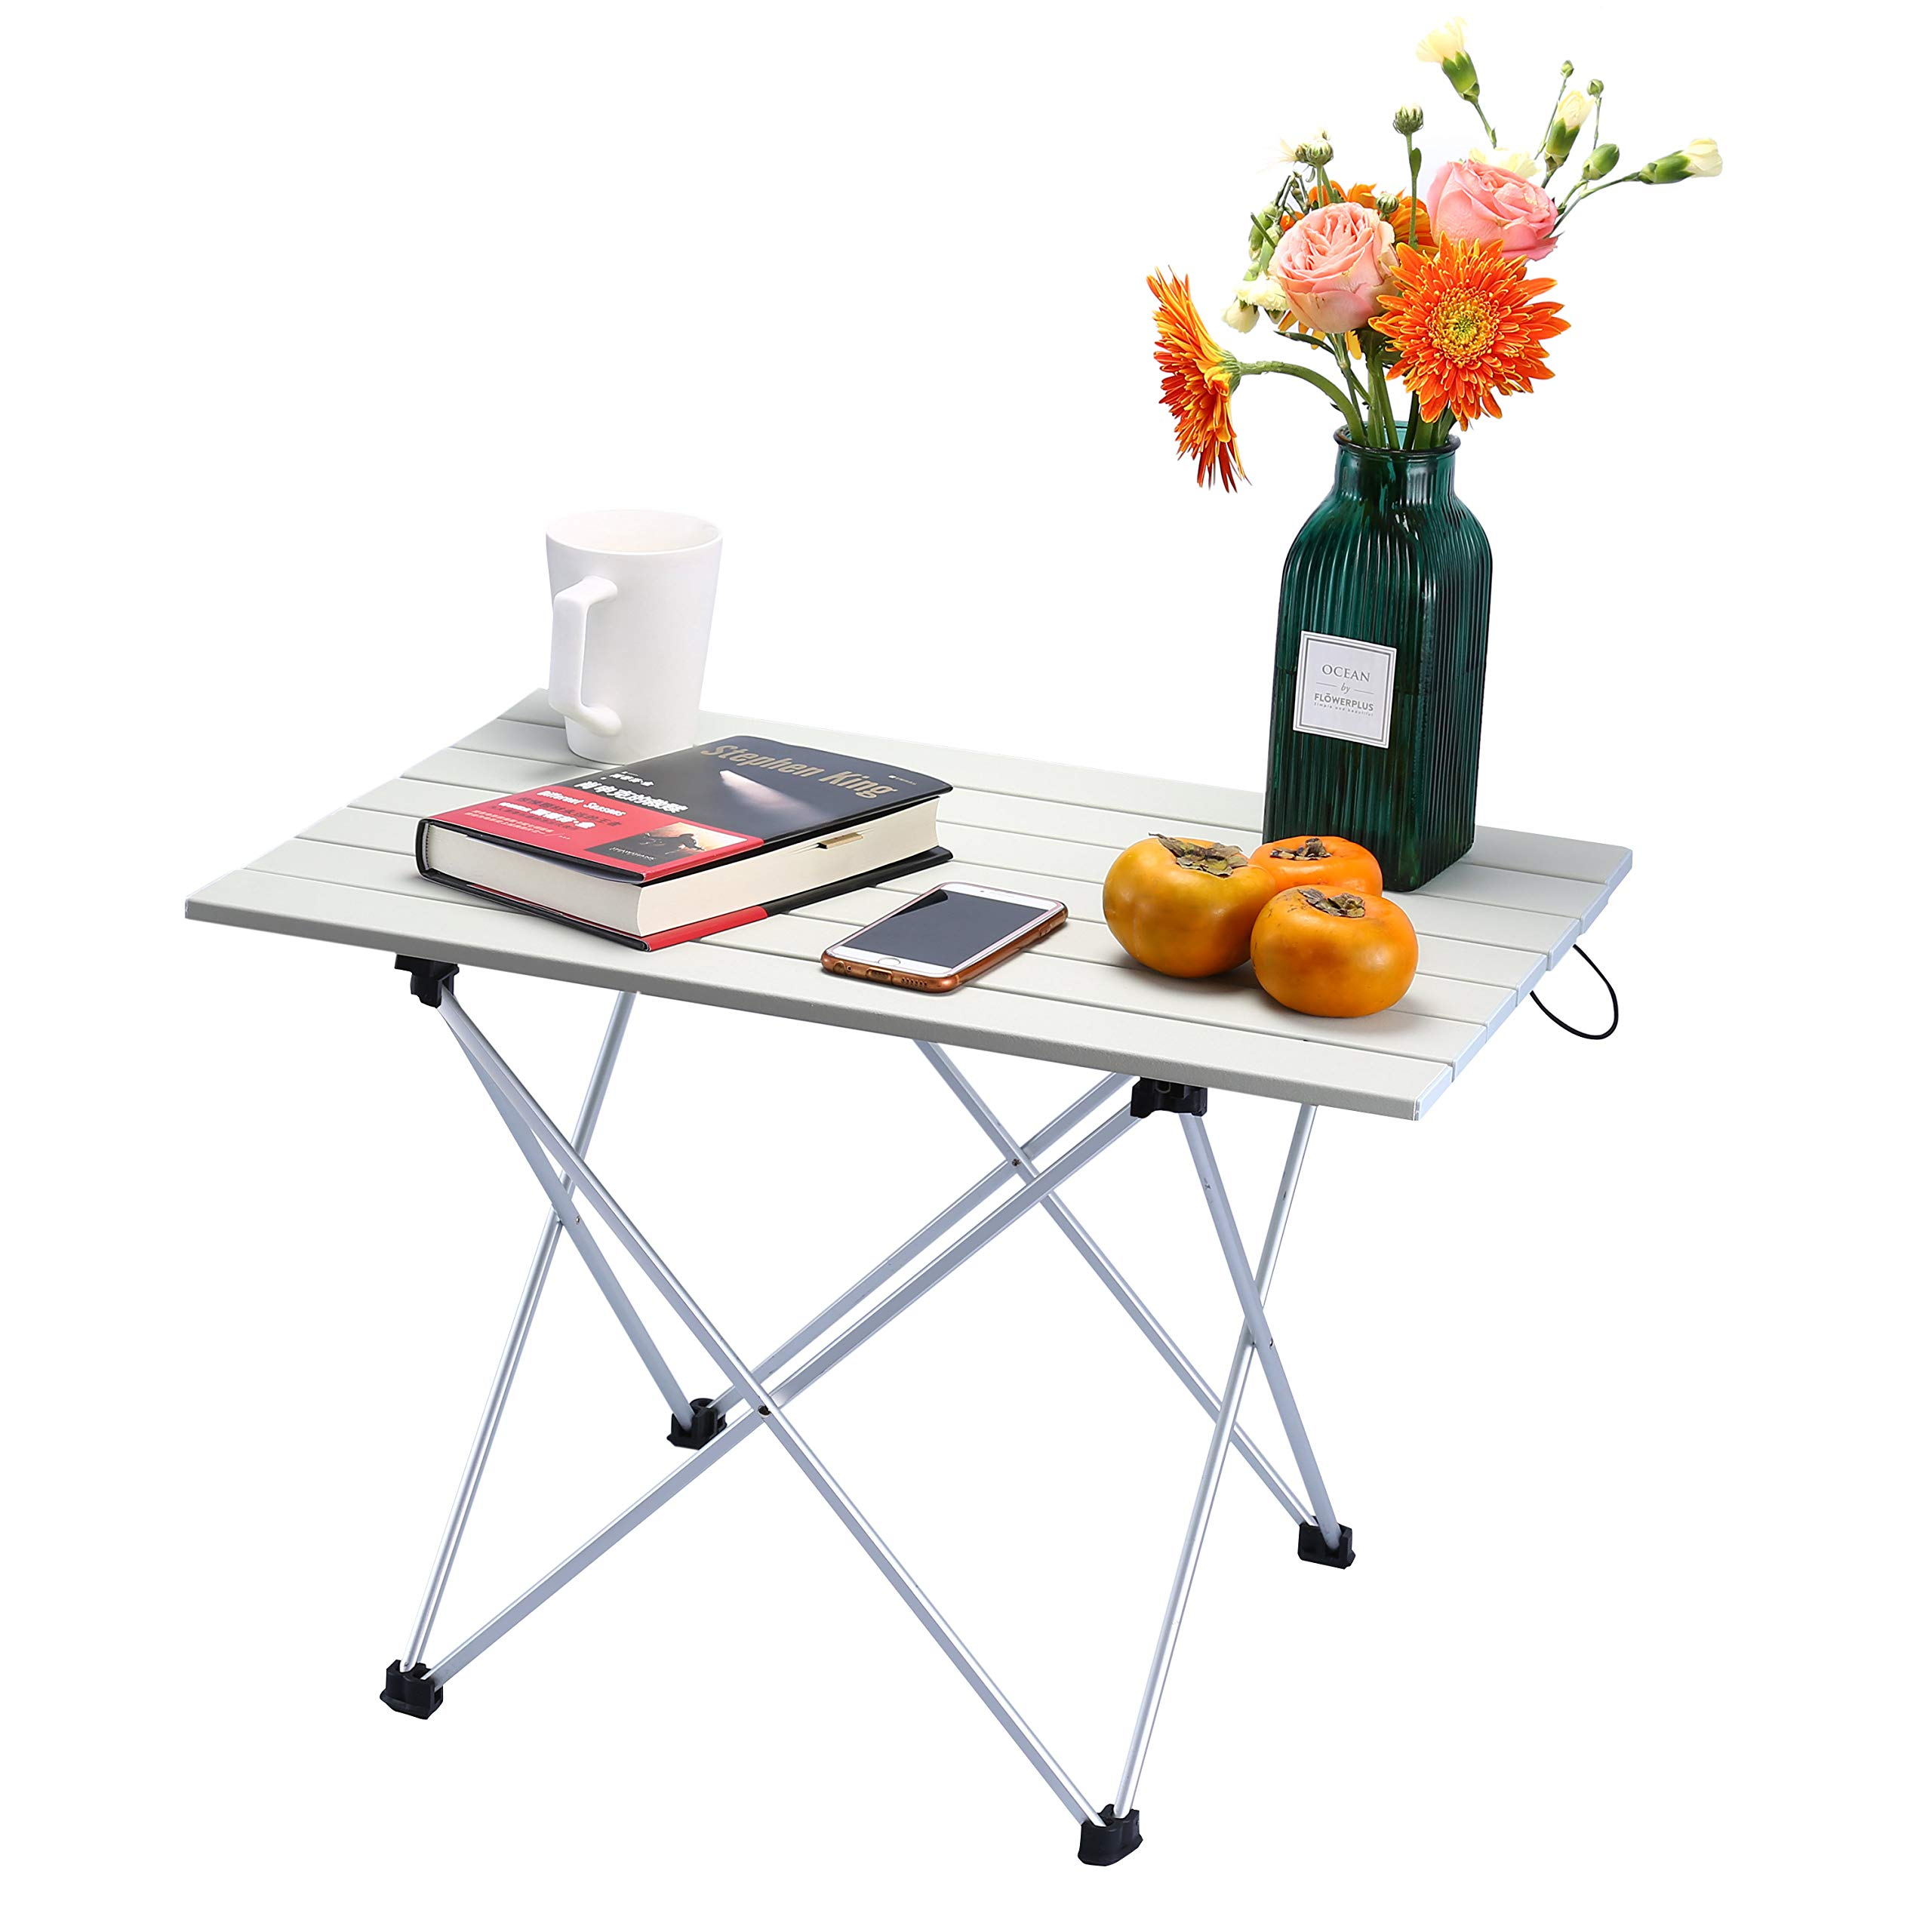 Movaty Portable Camping Table Foldable Outdoor table Lightweight Roll Up Aluminum for Indoor and Outdoor Desk with Carry Bag for Picnic, BBQ, Fishing,Hiking and Travel,Easy to Clean